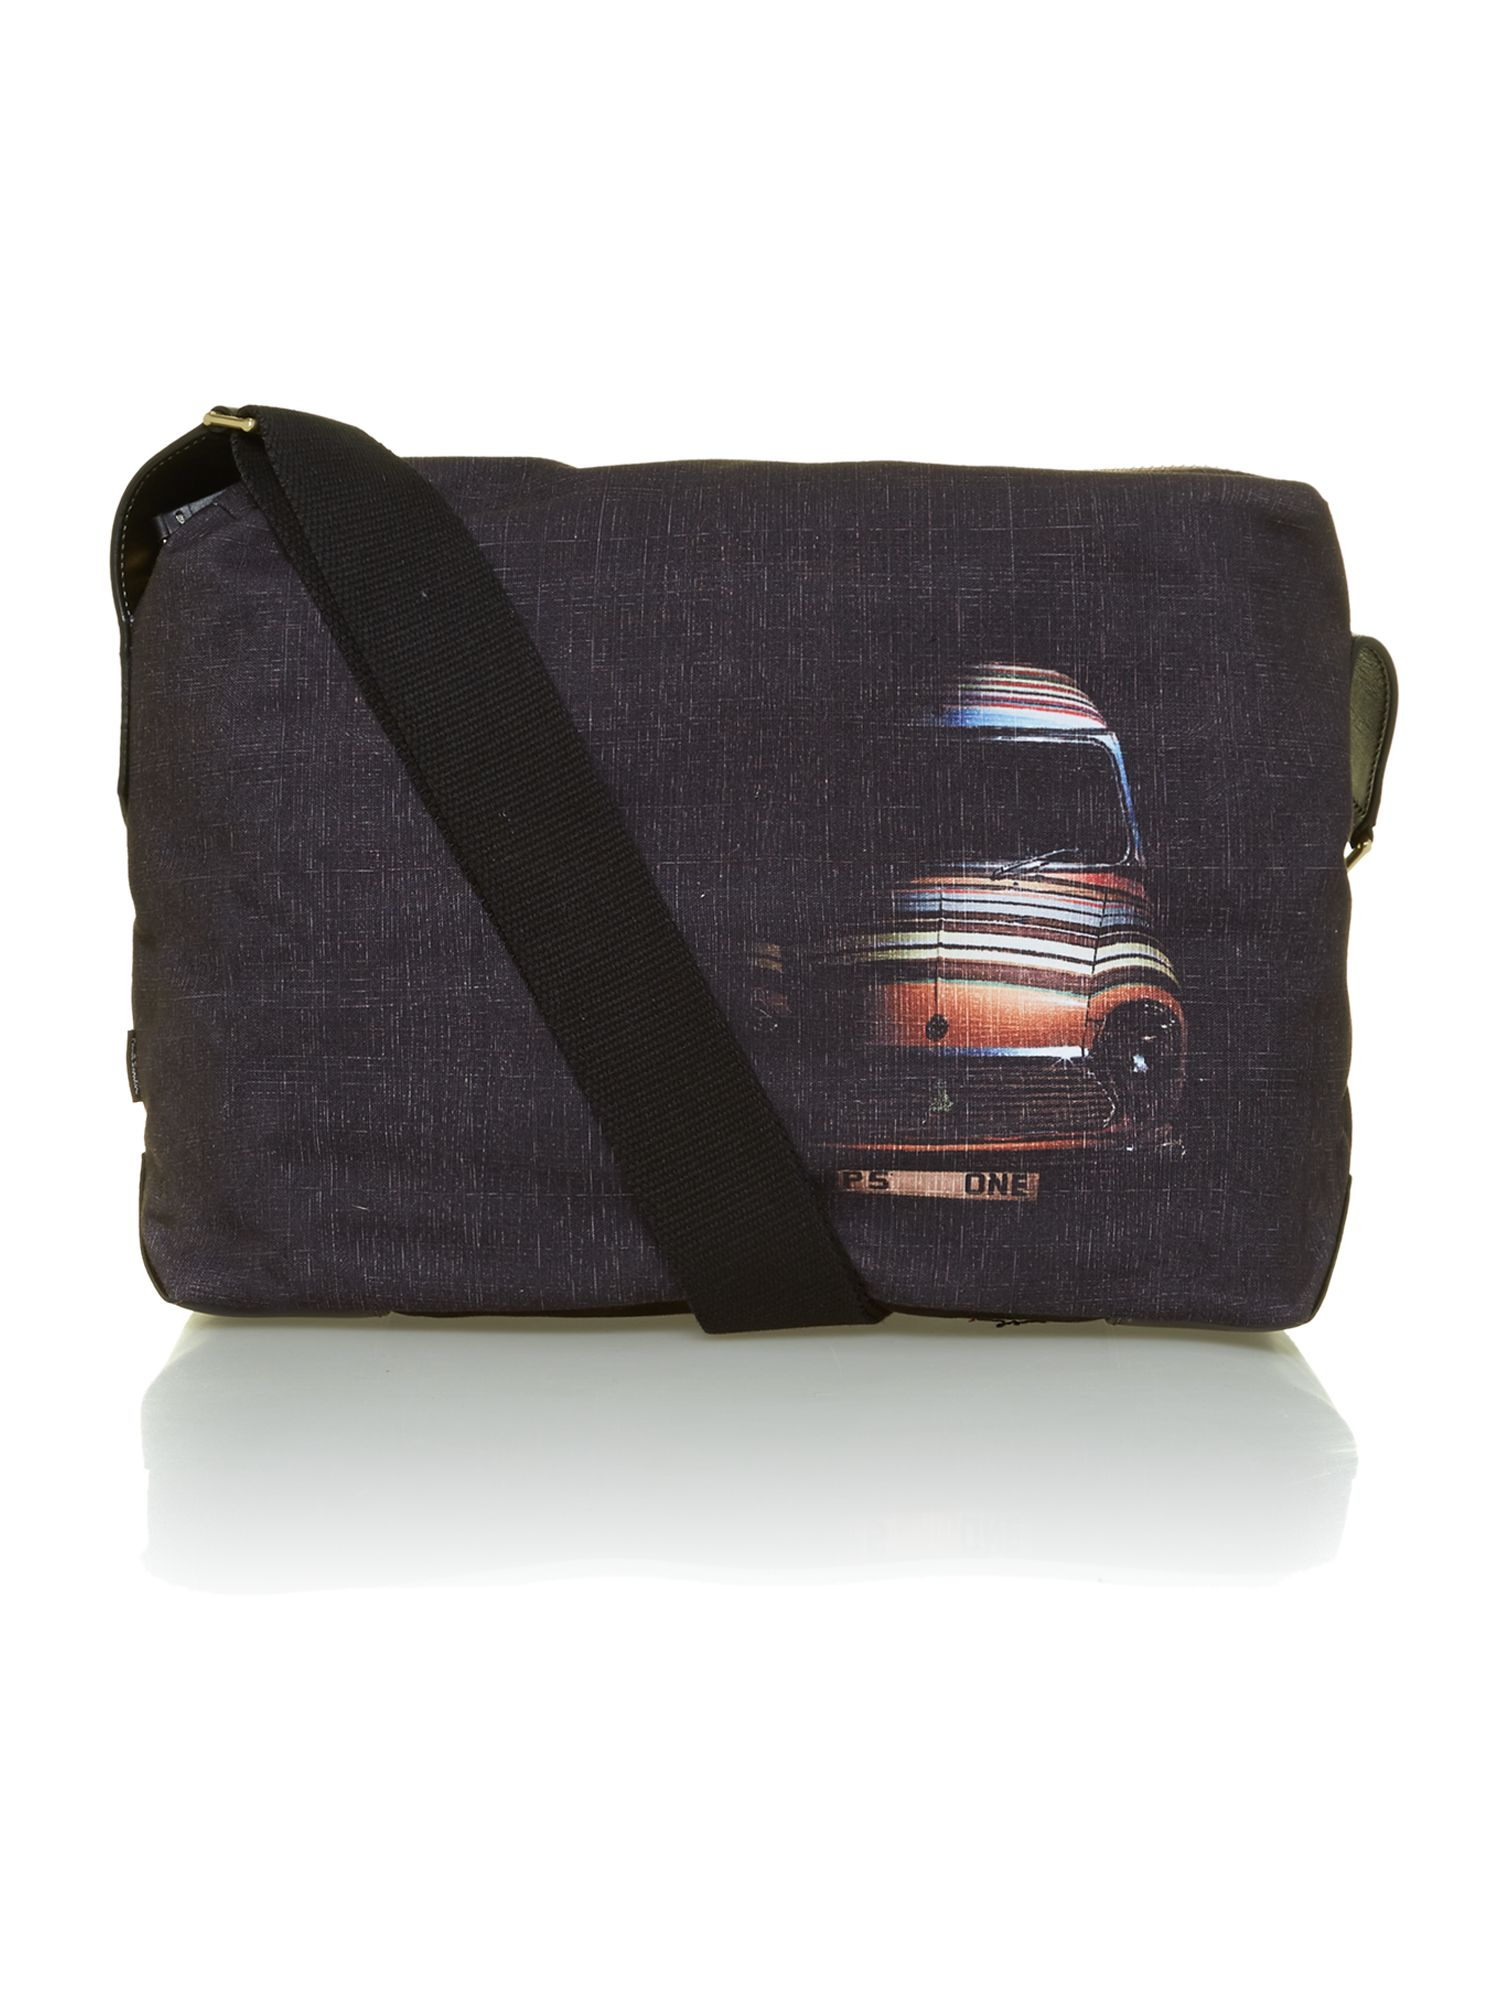 Car graphic messenger bag